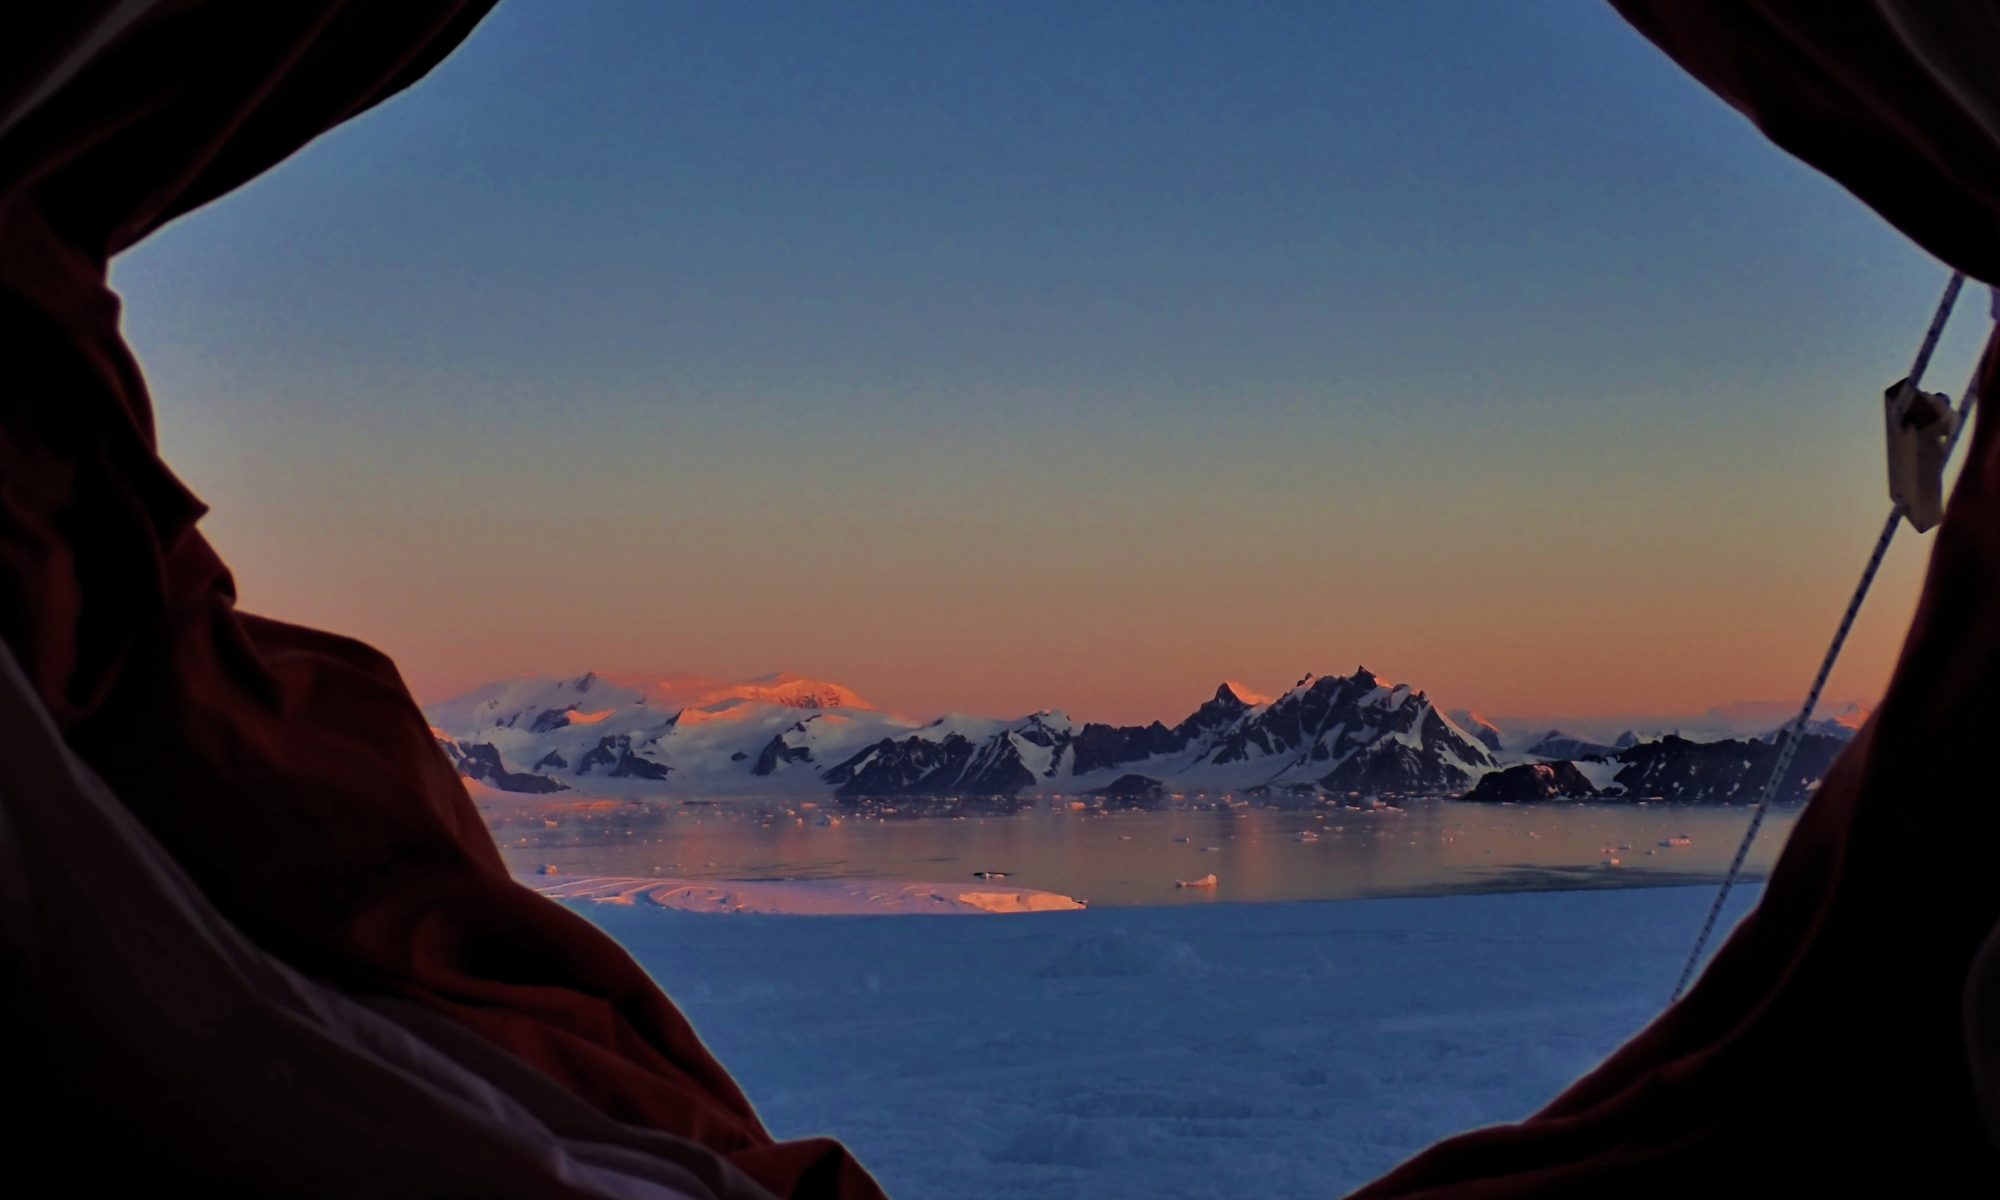 A photo of sunset lit peaks behind an ice-filled bay, taken from the opening of a red canvas tent.